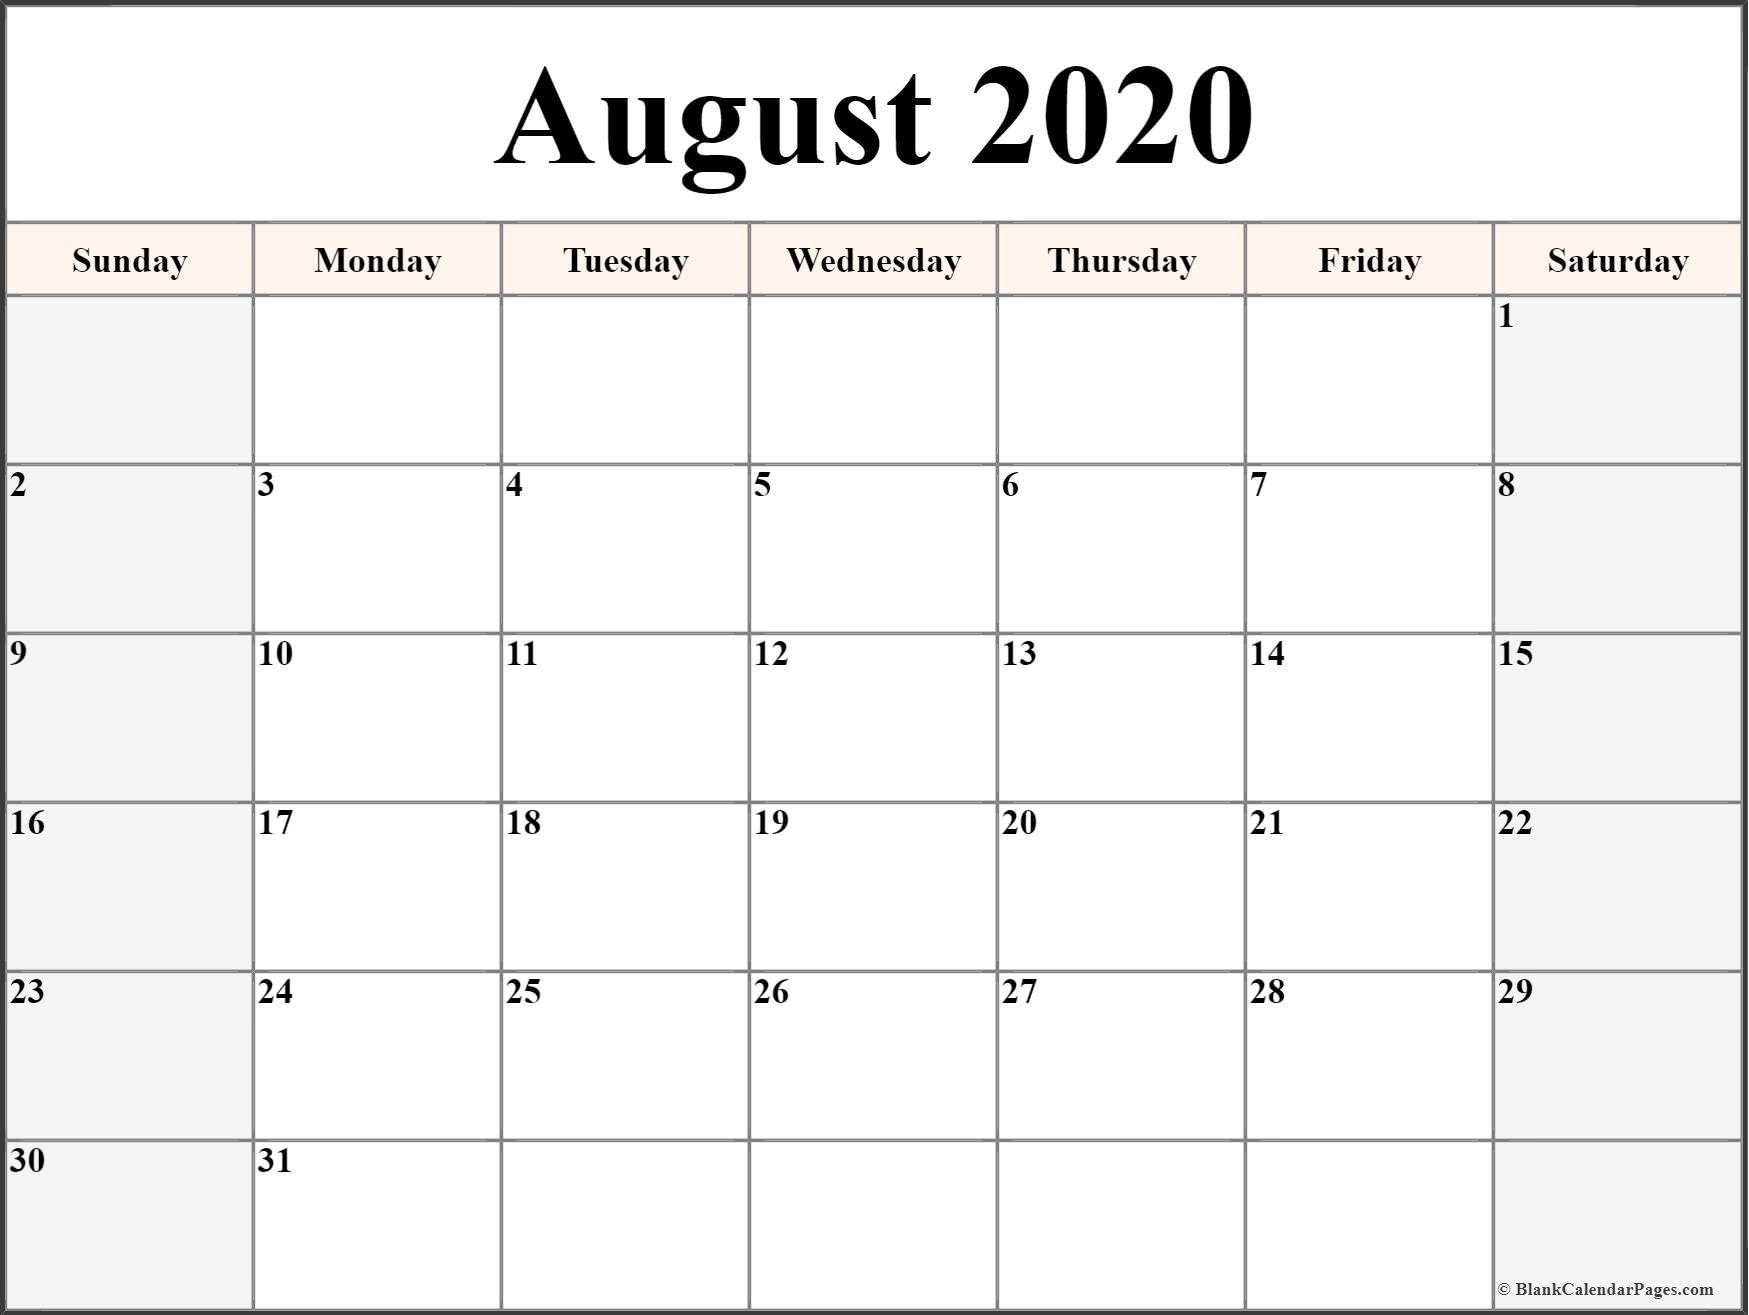 August 2020 Calendar | Free Printable Monthly Calendars-Blank Printable Calendar July And August 2020